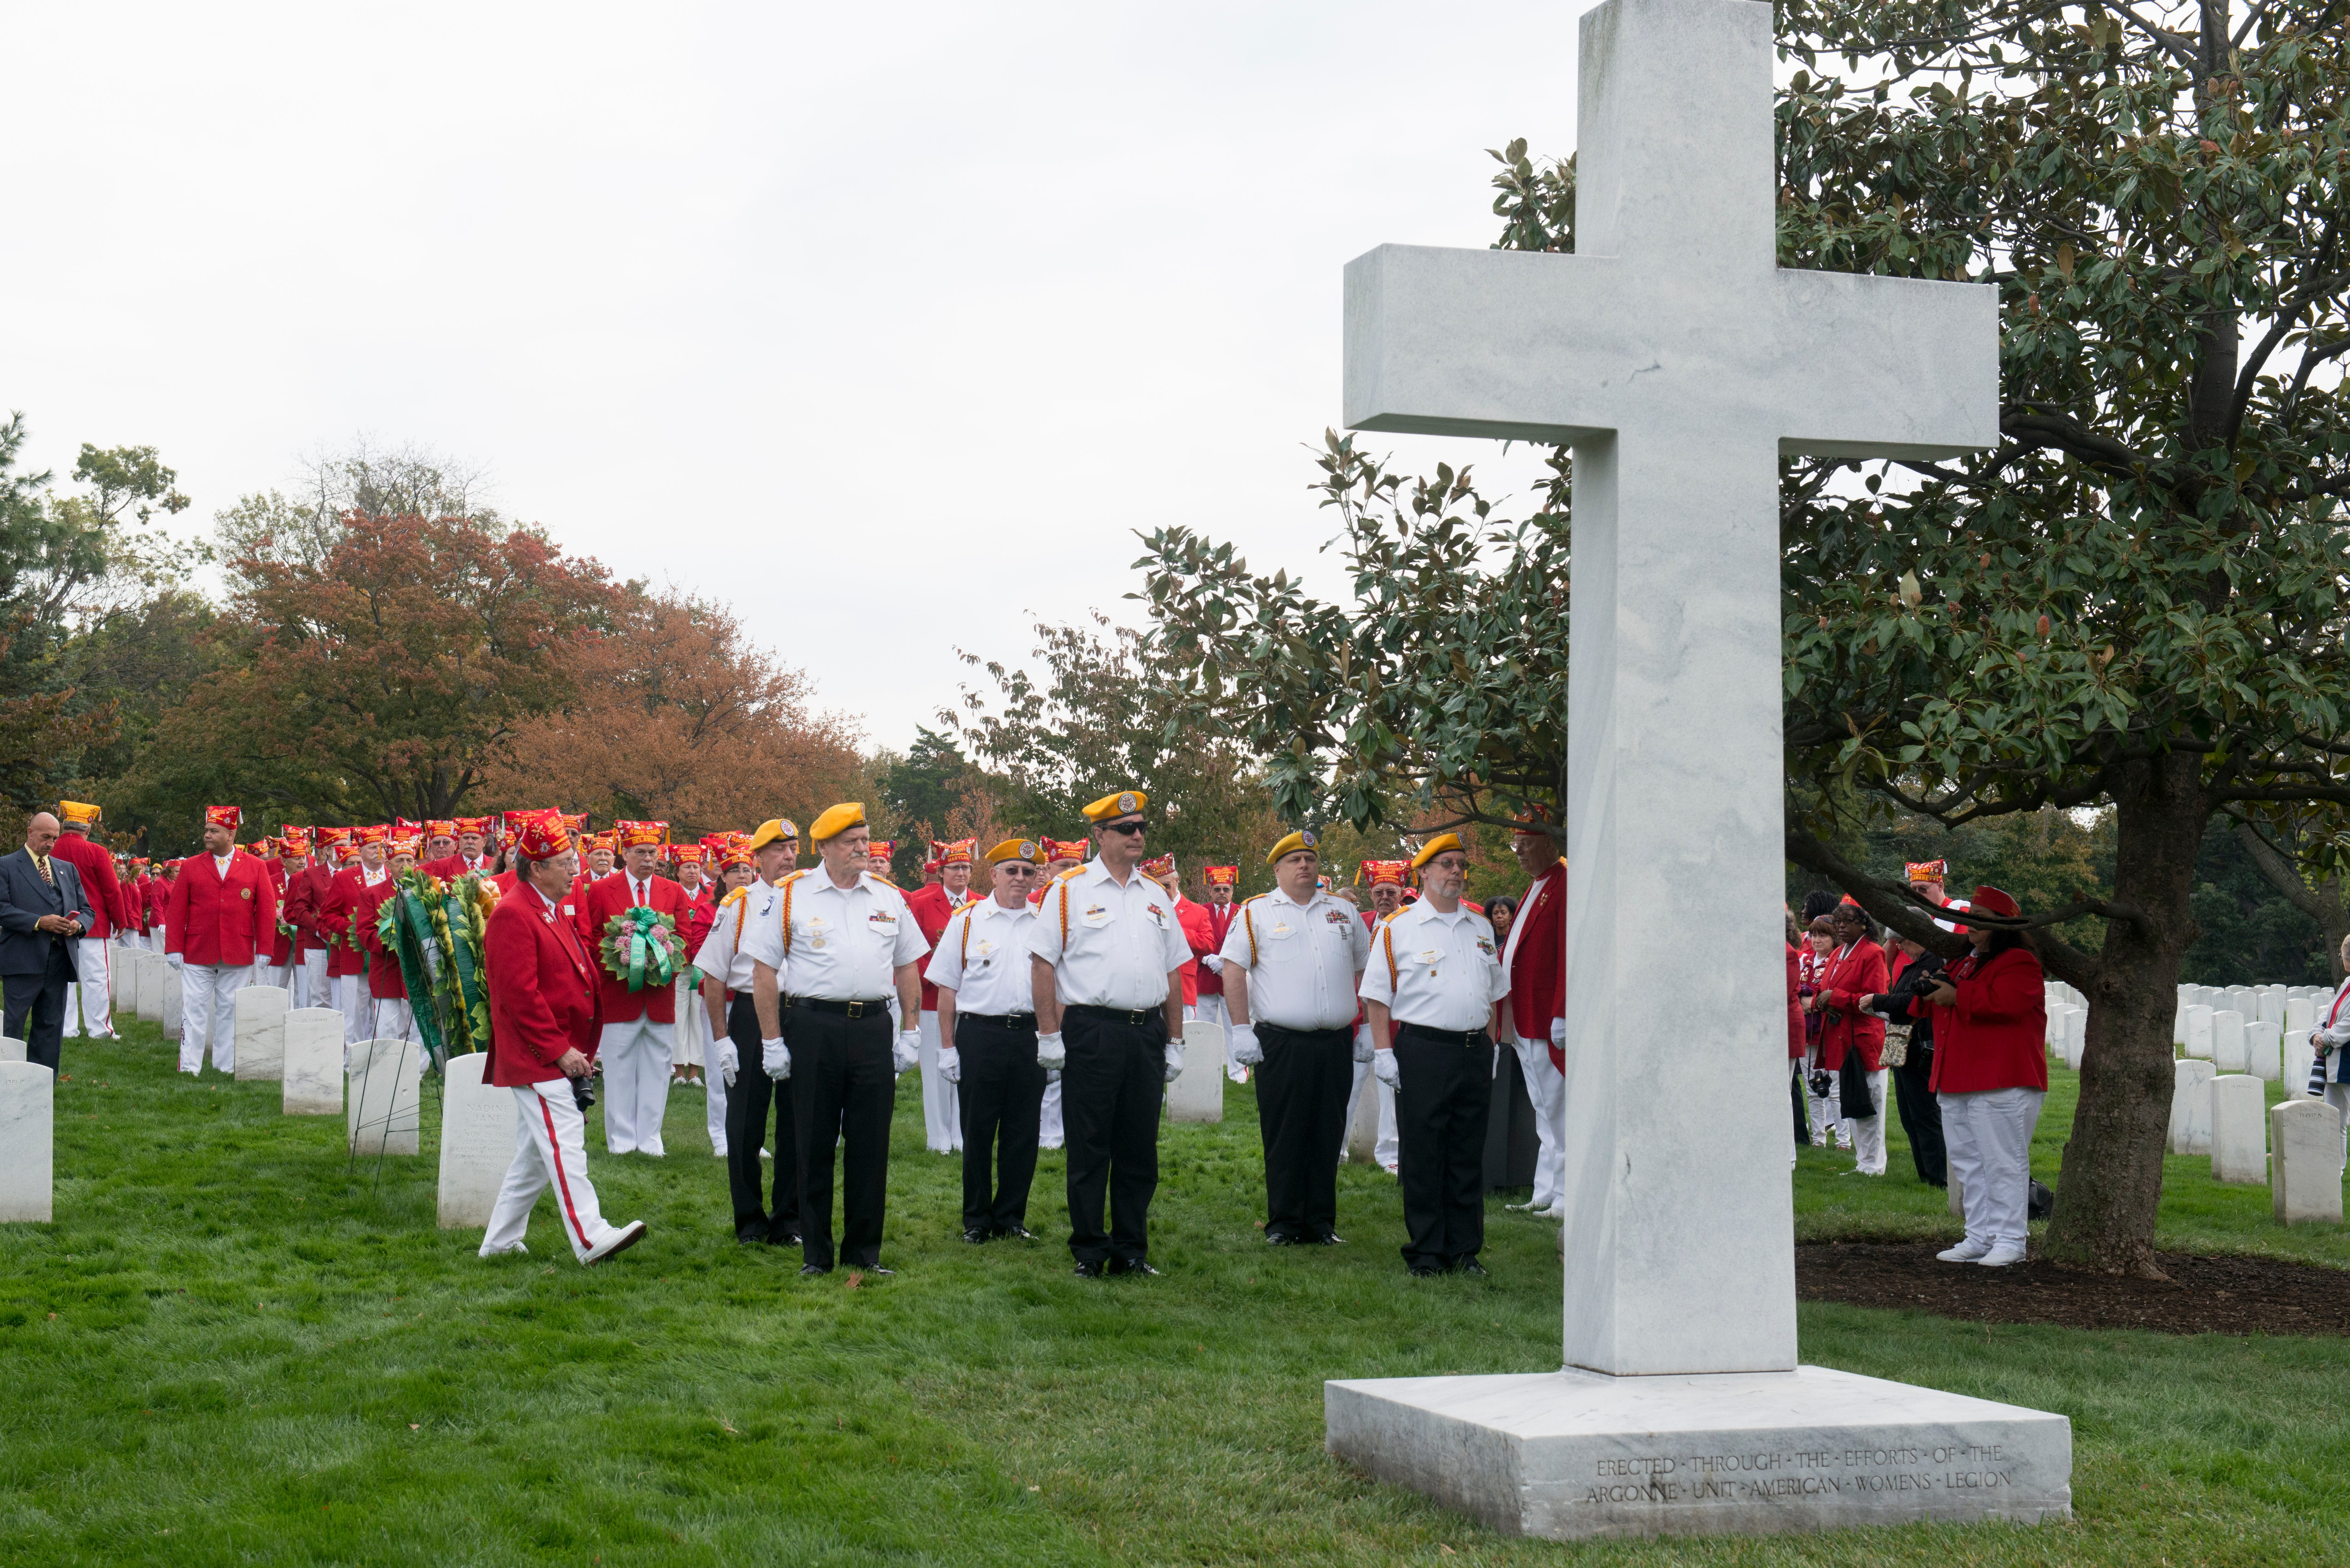 Members of the United States Military Order of the Cootie, 'The Honor Degree of the Veterans of Foreign Wars,' place approximately 250 wreaths at the Argonne Cross in Section 18 of Arlington National Cemetery, Oct. 30, 2016. The MOC was founded in 1920 and has made a visit to Arlington National Cemetery and the Tomb of the Unknown Soldier, known as 'Tomb Trek,' each year since 1934. (U.S. Army photo by Rachel Larue/Arlington National Cemetery)